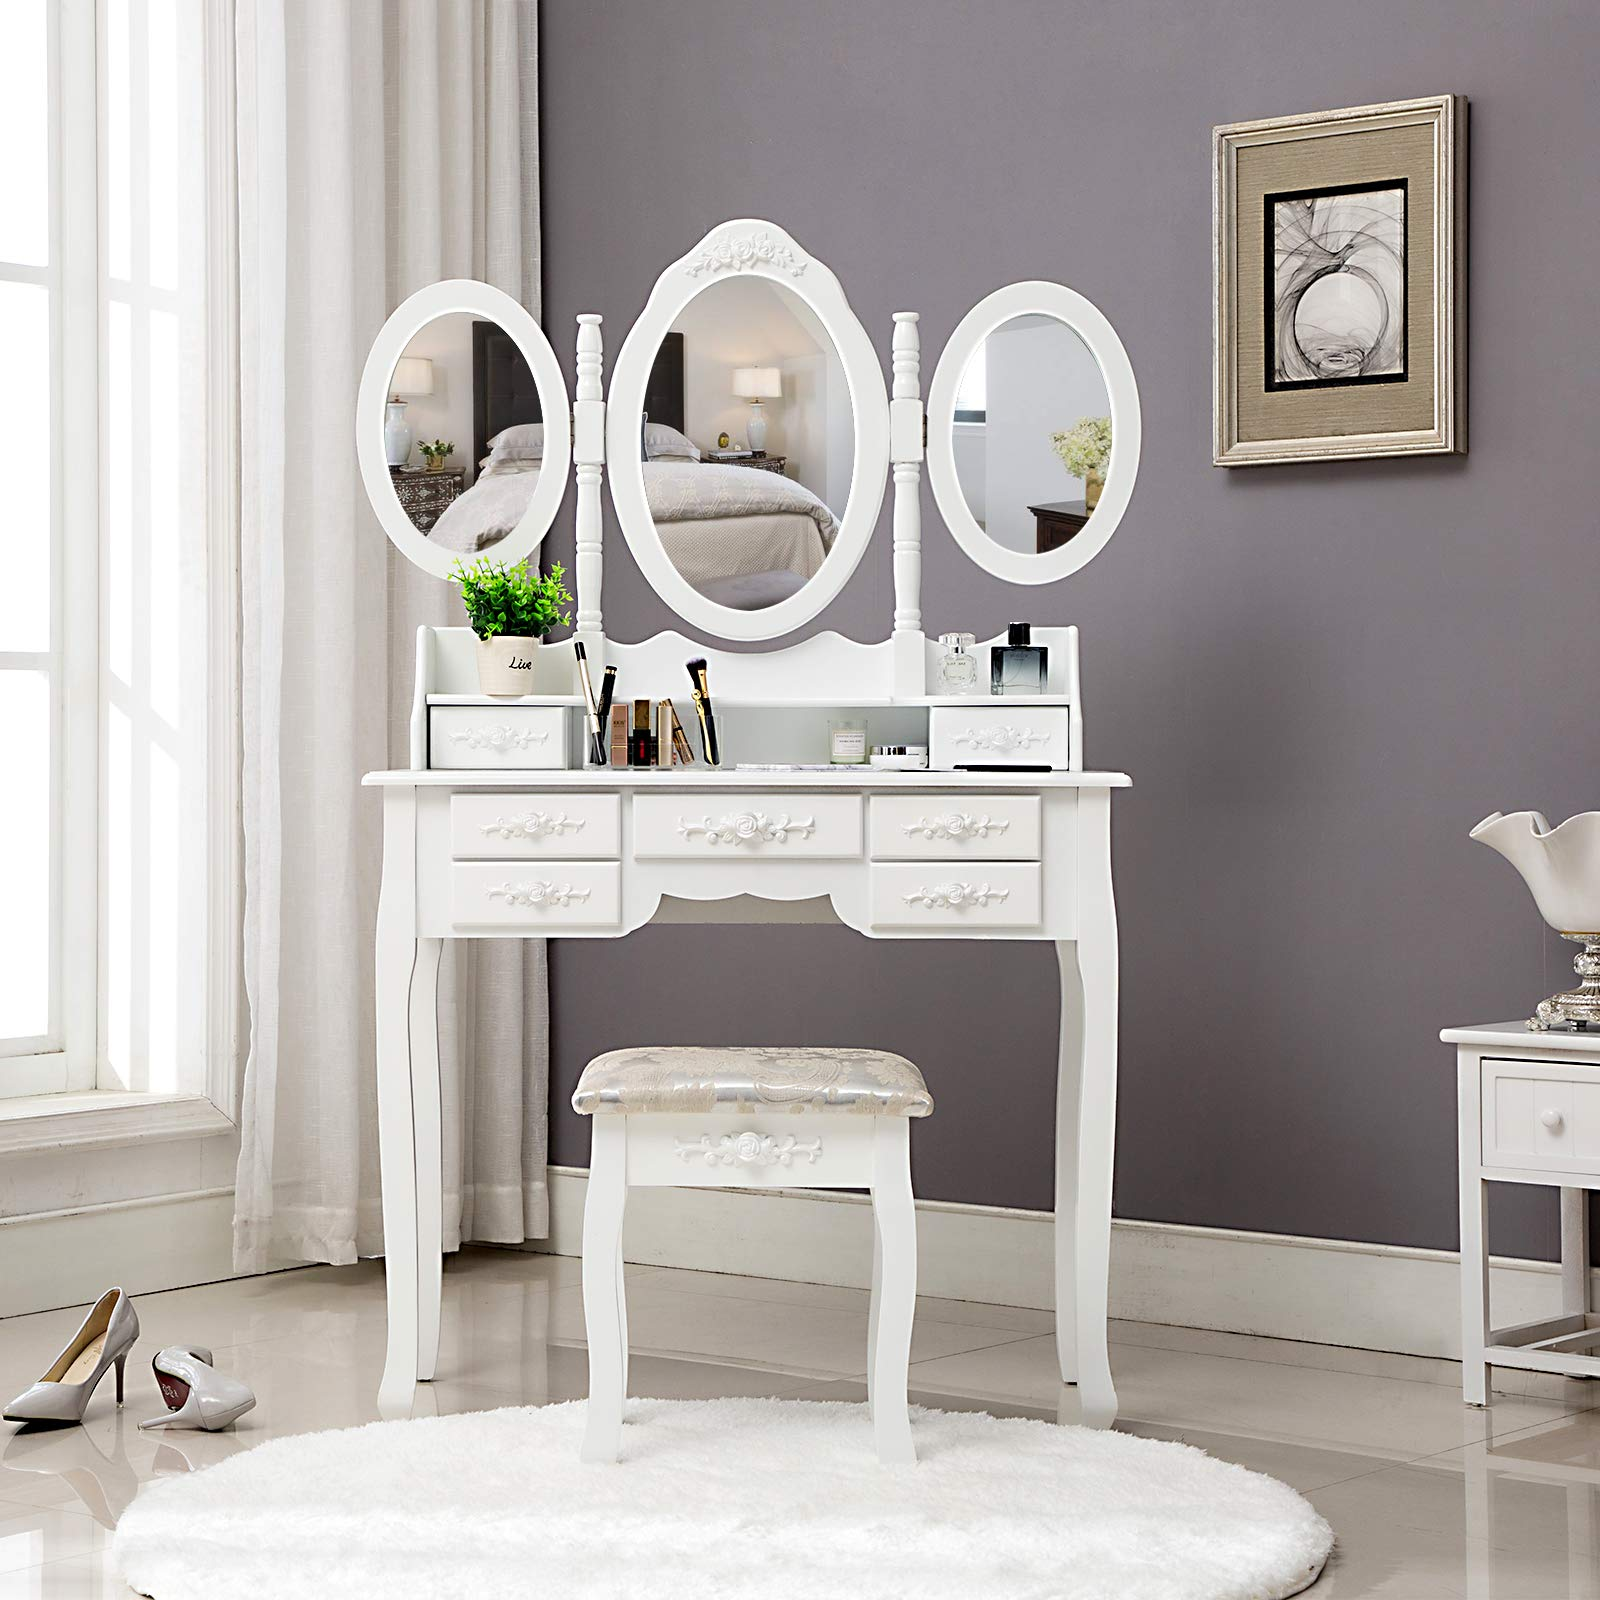 HONBAY Trifold Mirrors Makeup Vanity Table Set, Cushioned Stool and Surprise Gift Makeup Organizer with 7 Drawers Dressing Table (White) by Honbay